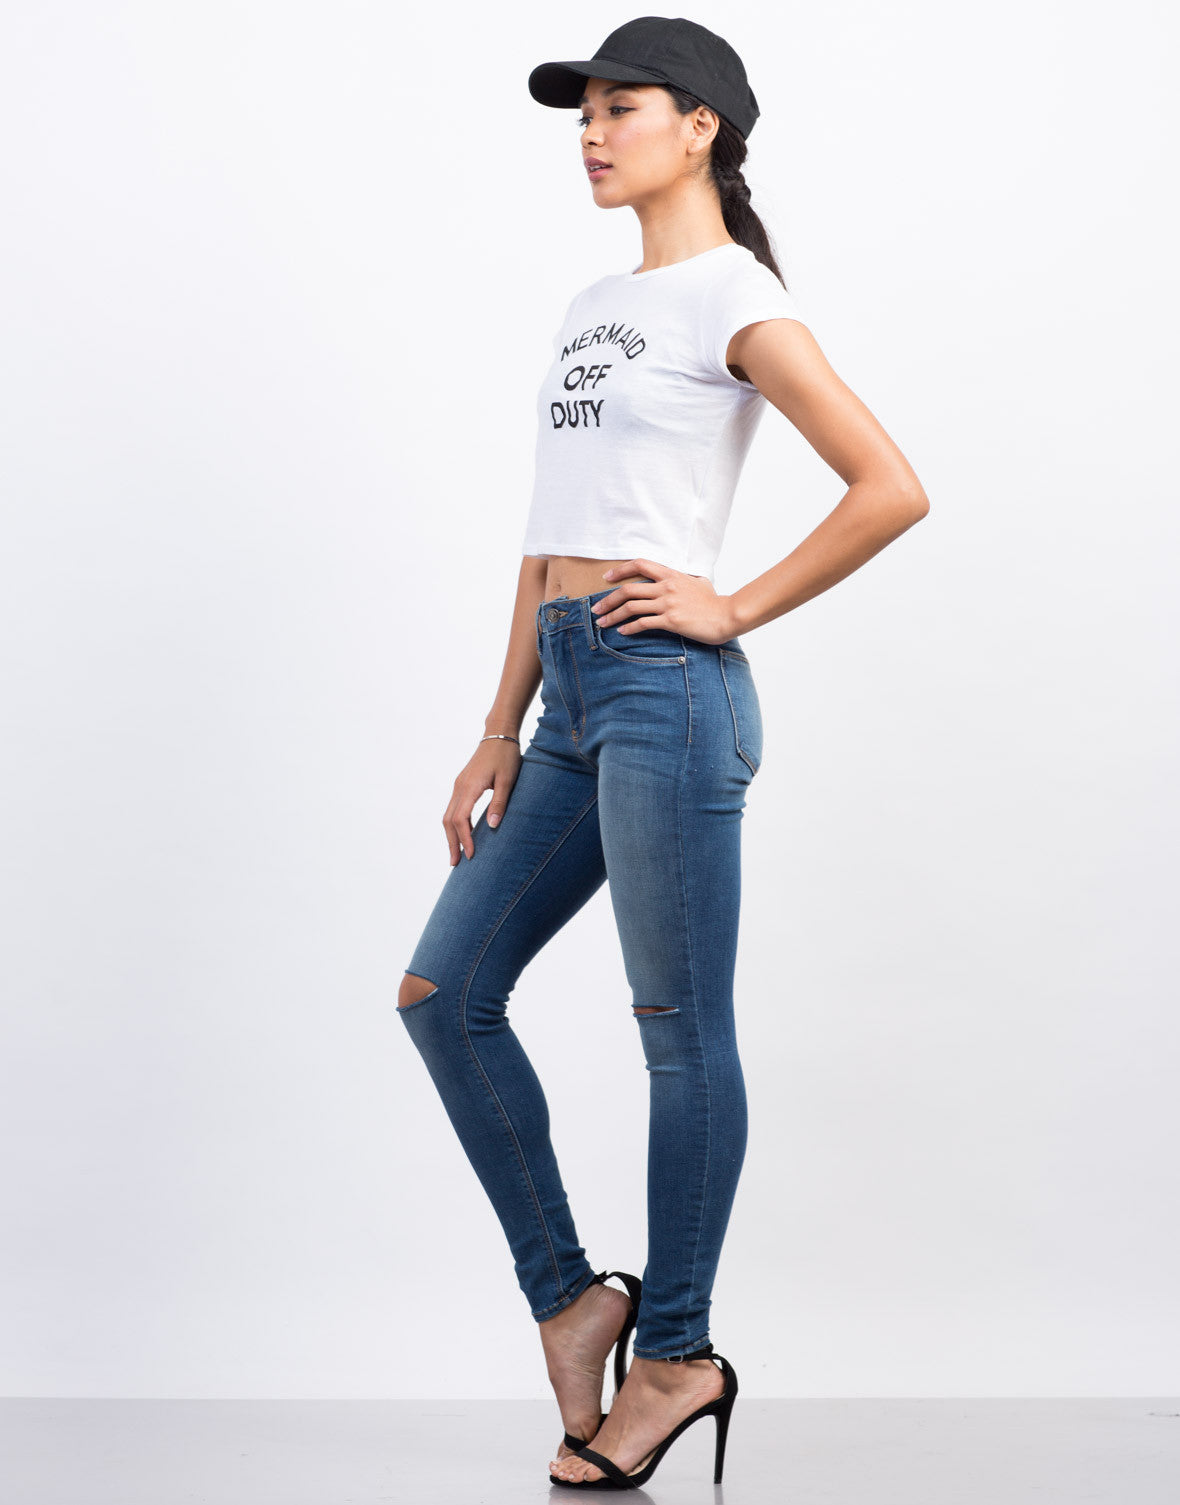 Side View of Mermaid Off Duty Cropped Tee